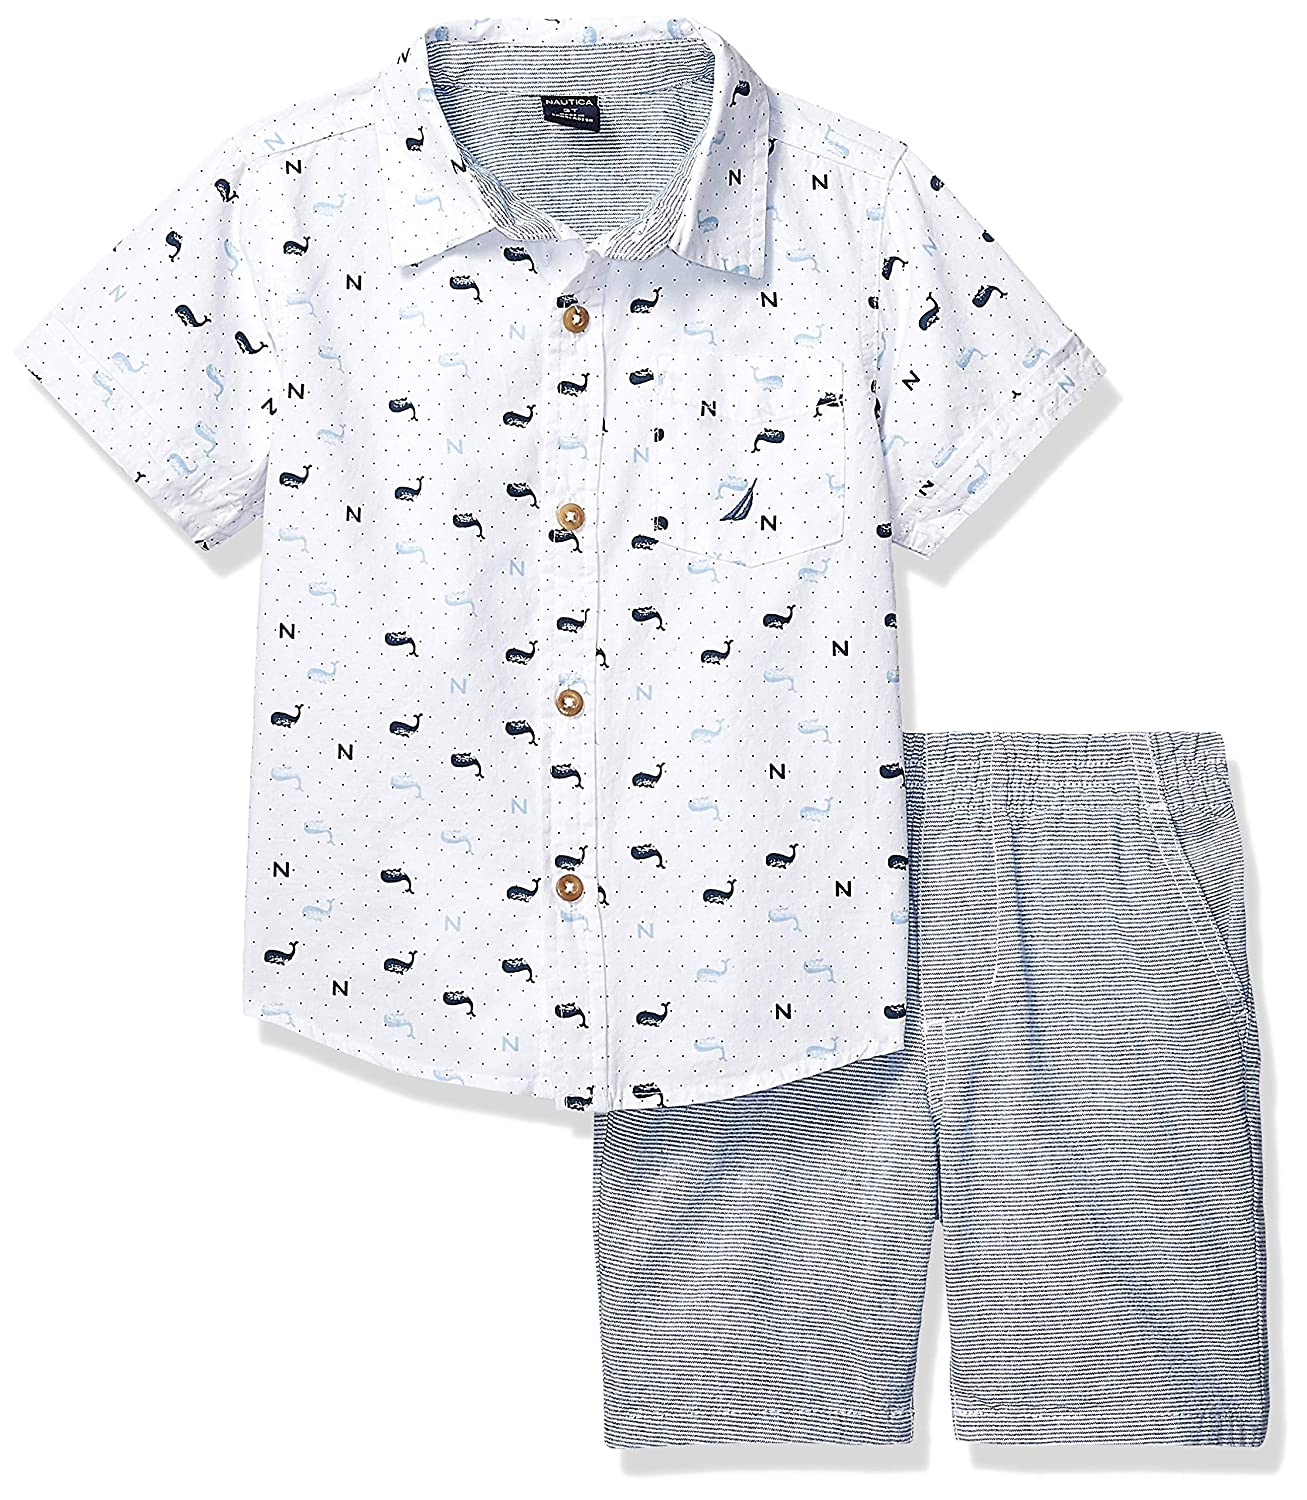 Boys Toddler 2 Pieces Shirt Shorts Set White Print 3T KHQ Nautica Sets